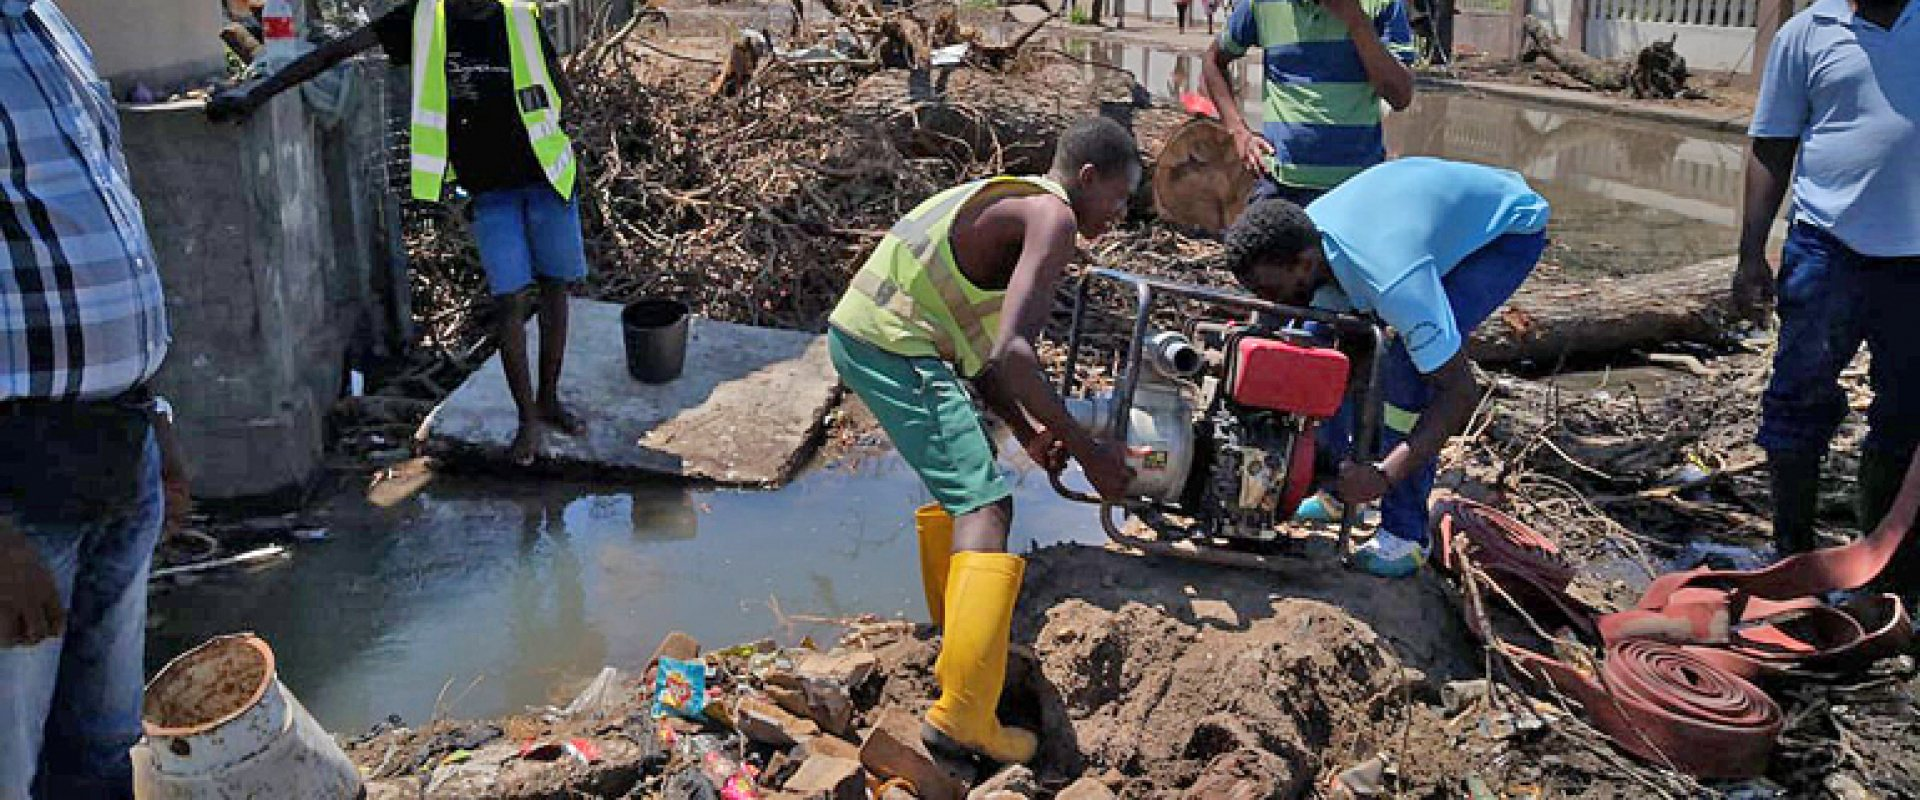 Cyclone Idai caused enormous damage in the City of Beira in Mozambique